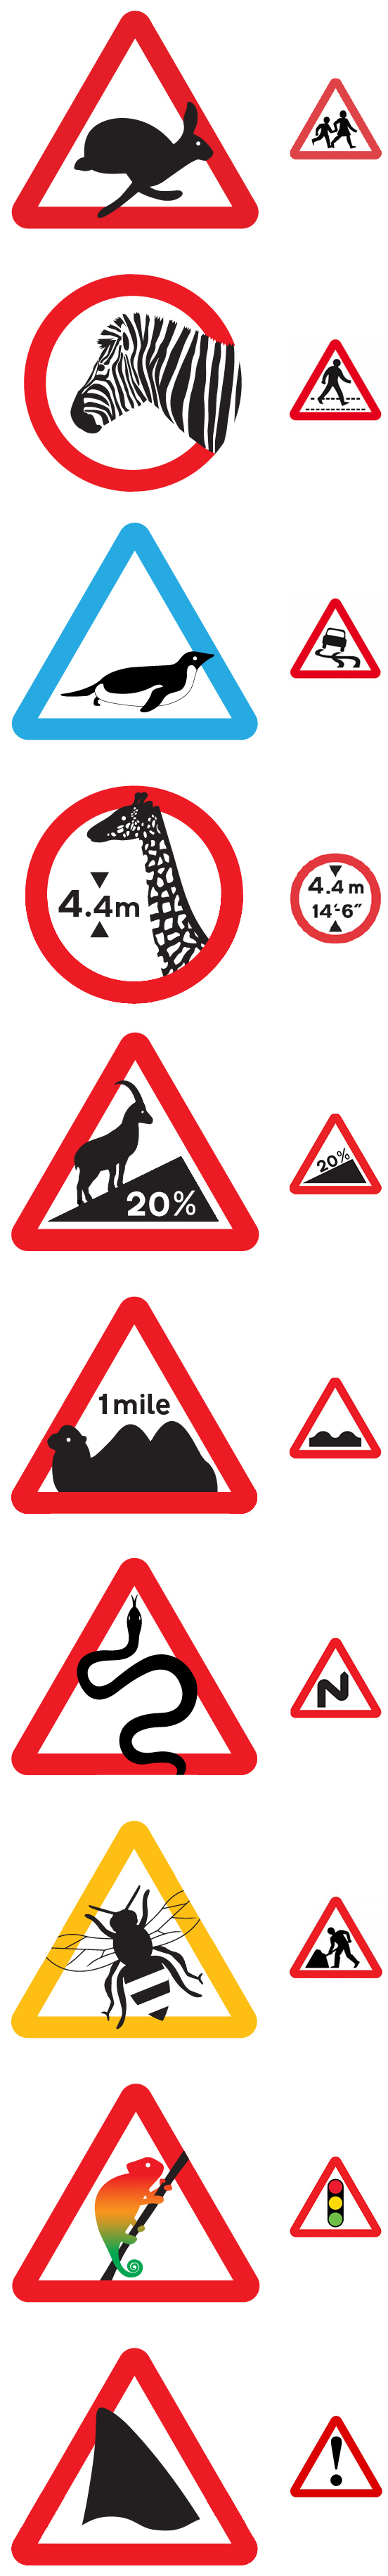 Animal signs Blog new signs.jpg